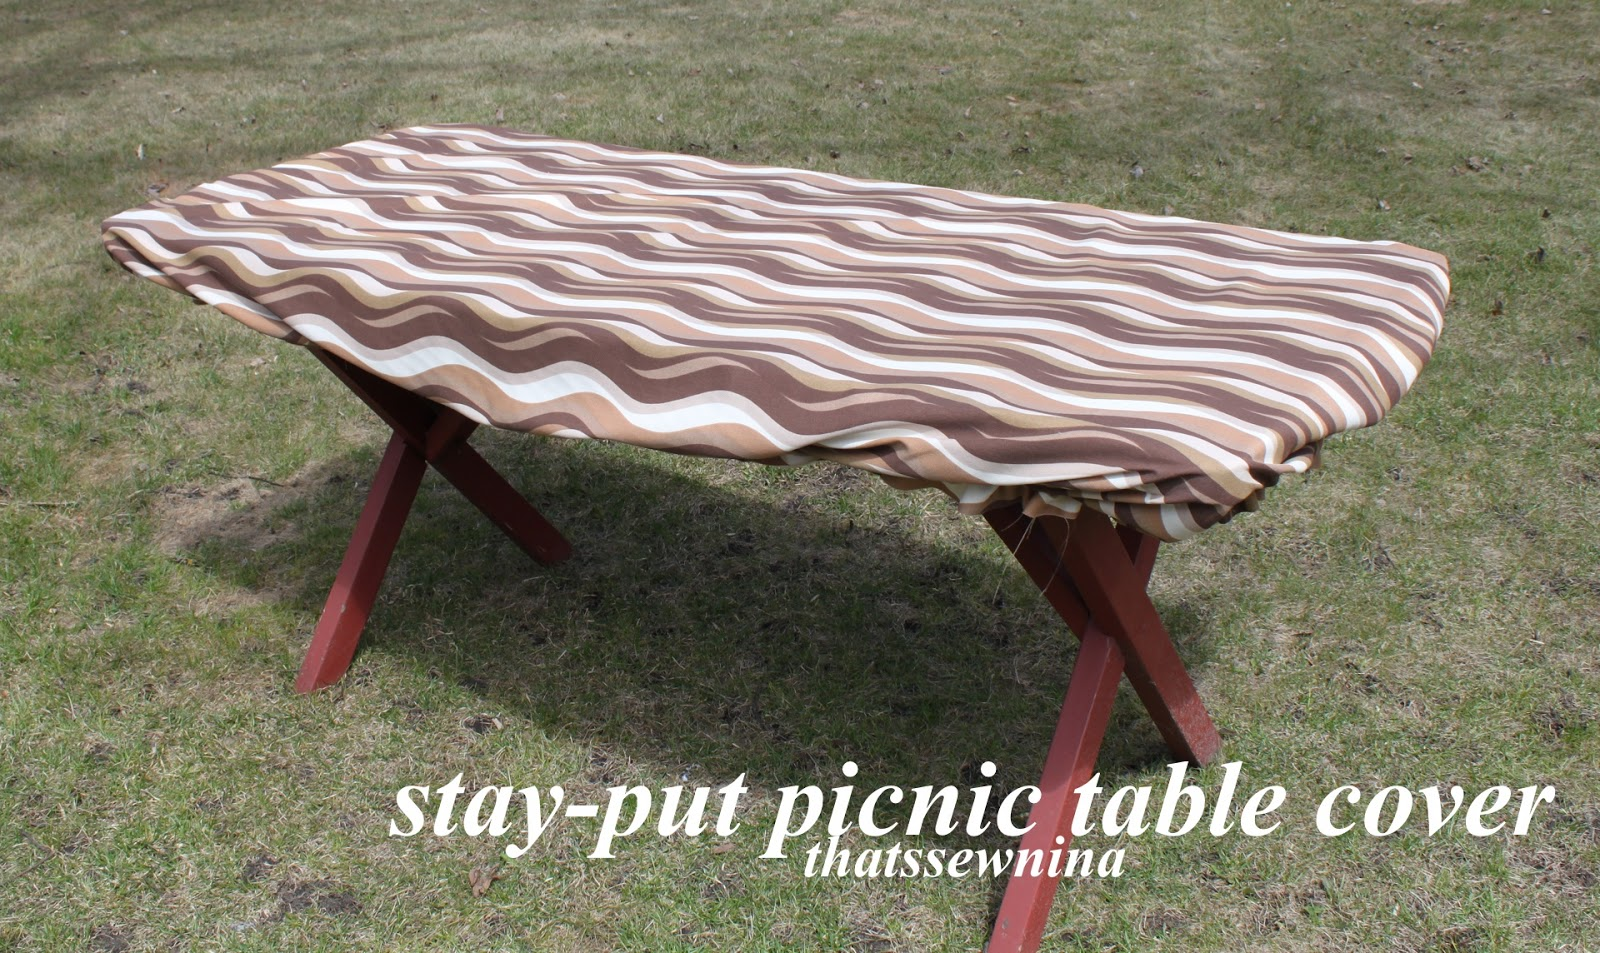 Great idea a stay put picnic table cover